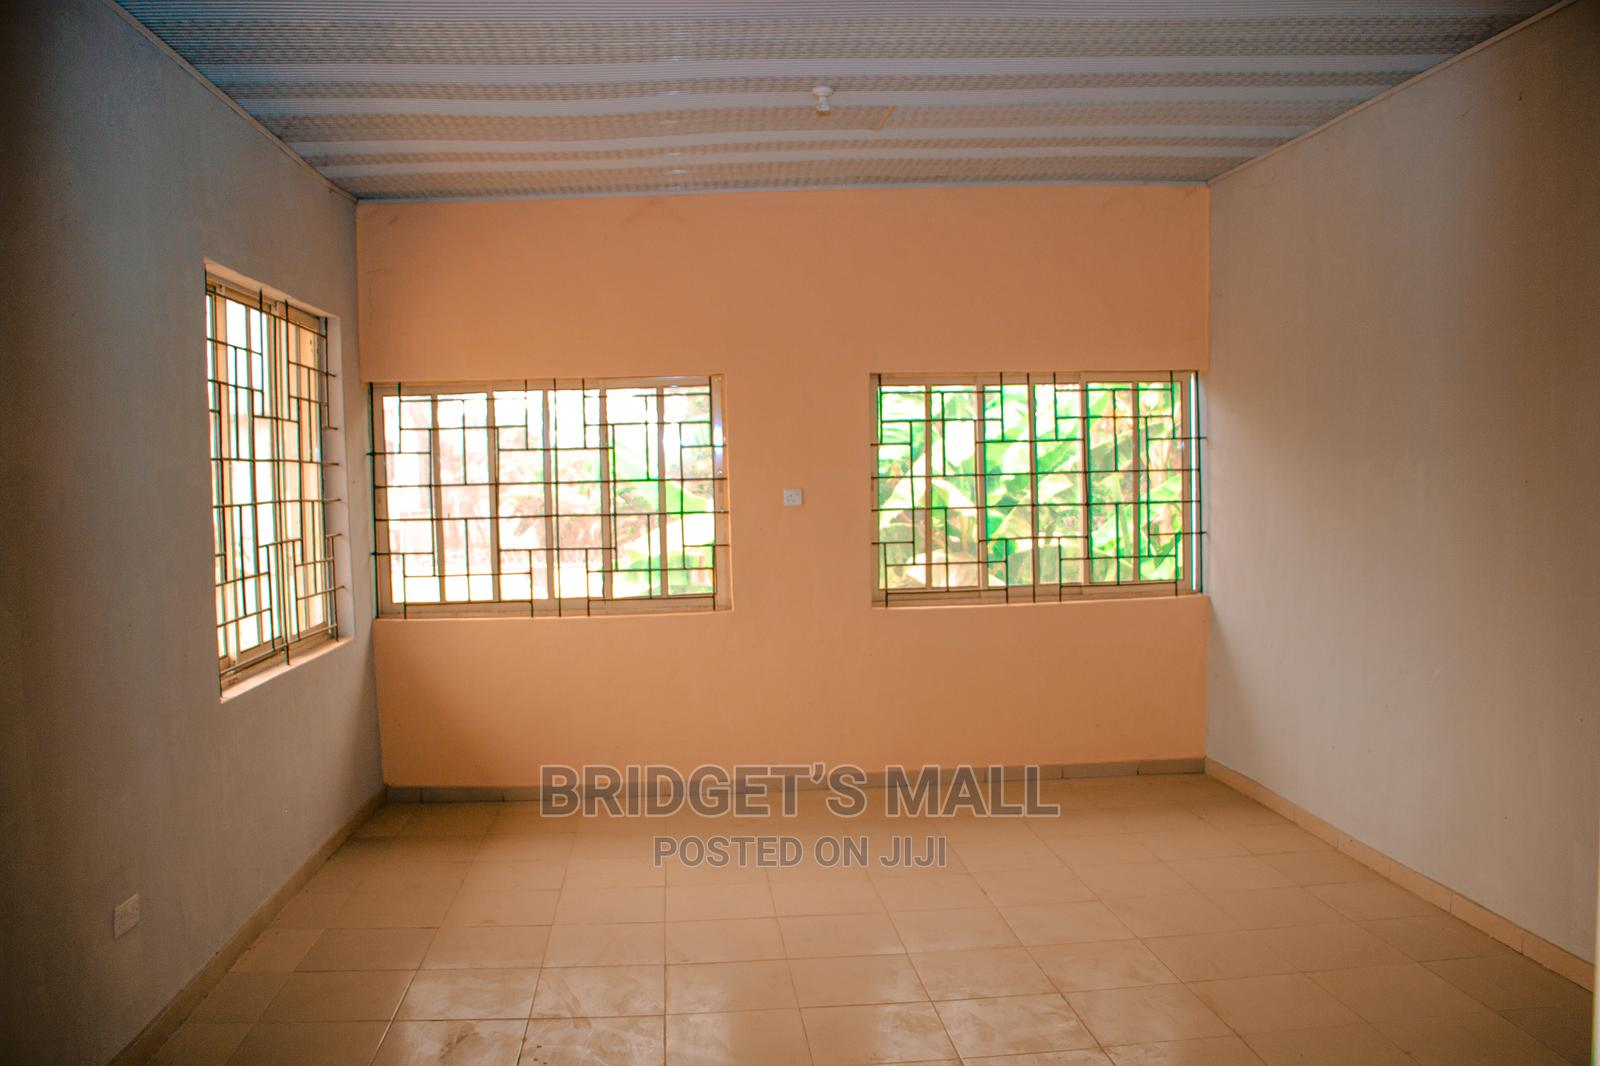 Archive: Shops for Let Within Bridget's Mall in Ile-Ife